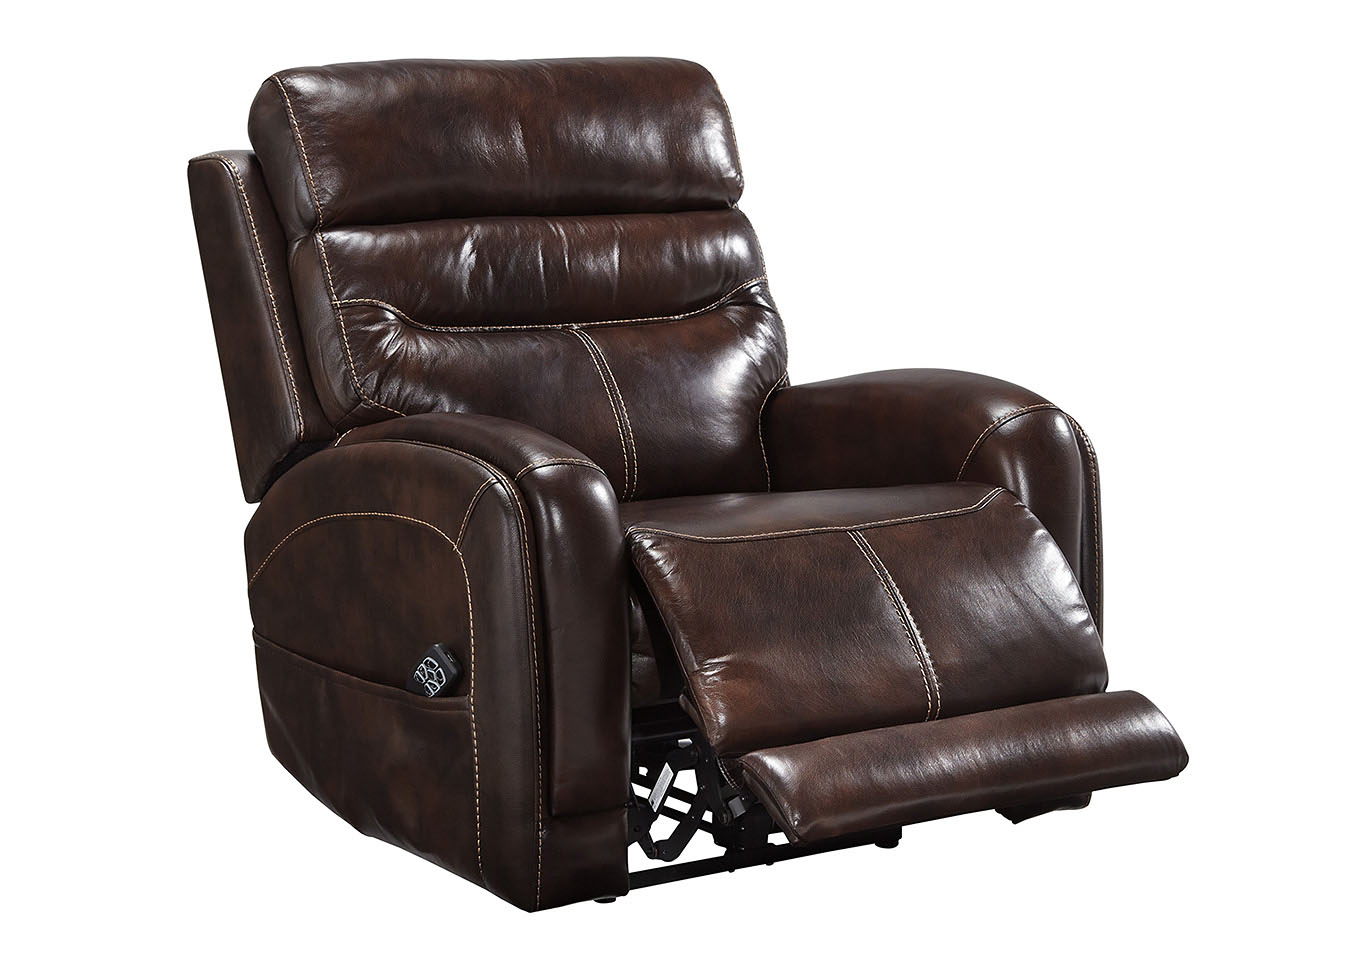 Ailor Brown Power Recliner,Signature Design By Ashley